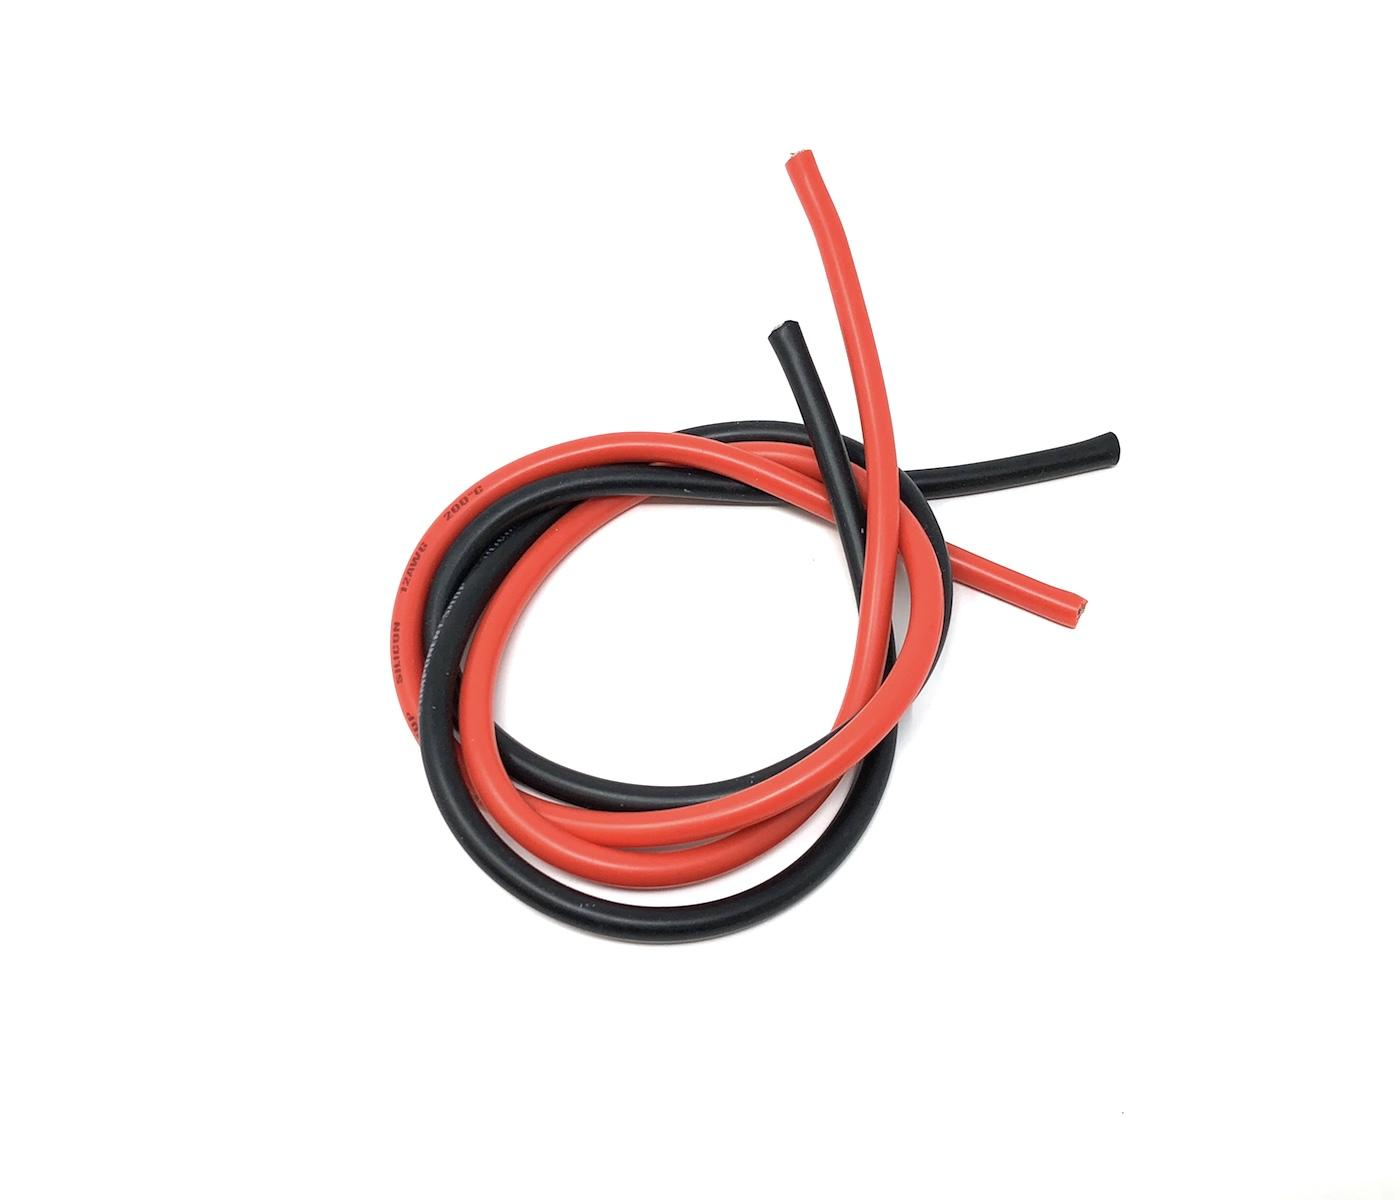 Hobbywing 14awg wire 75cm Black, 25cm Red